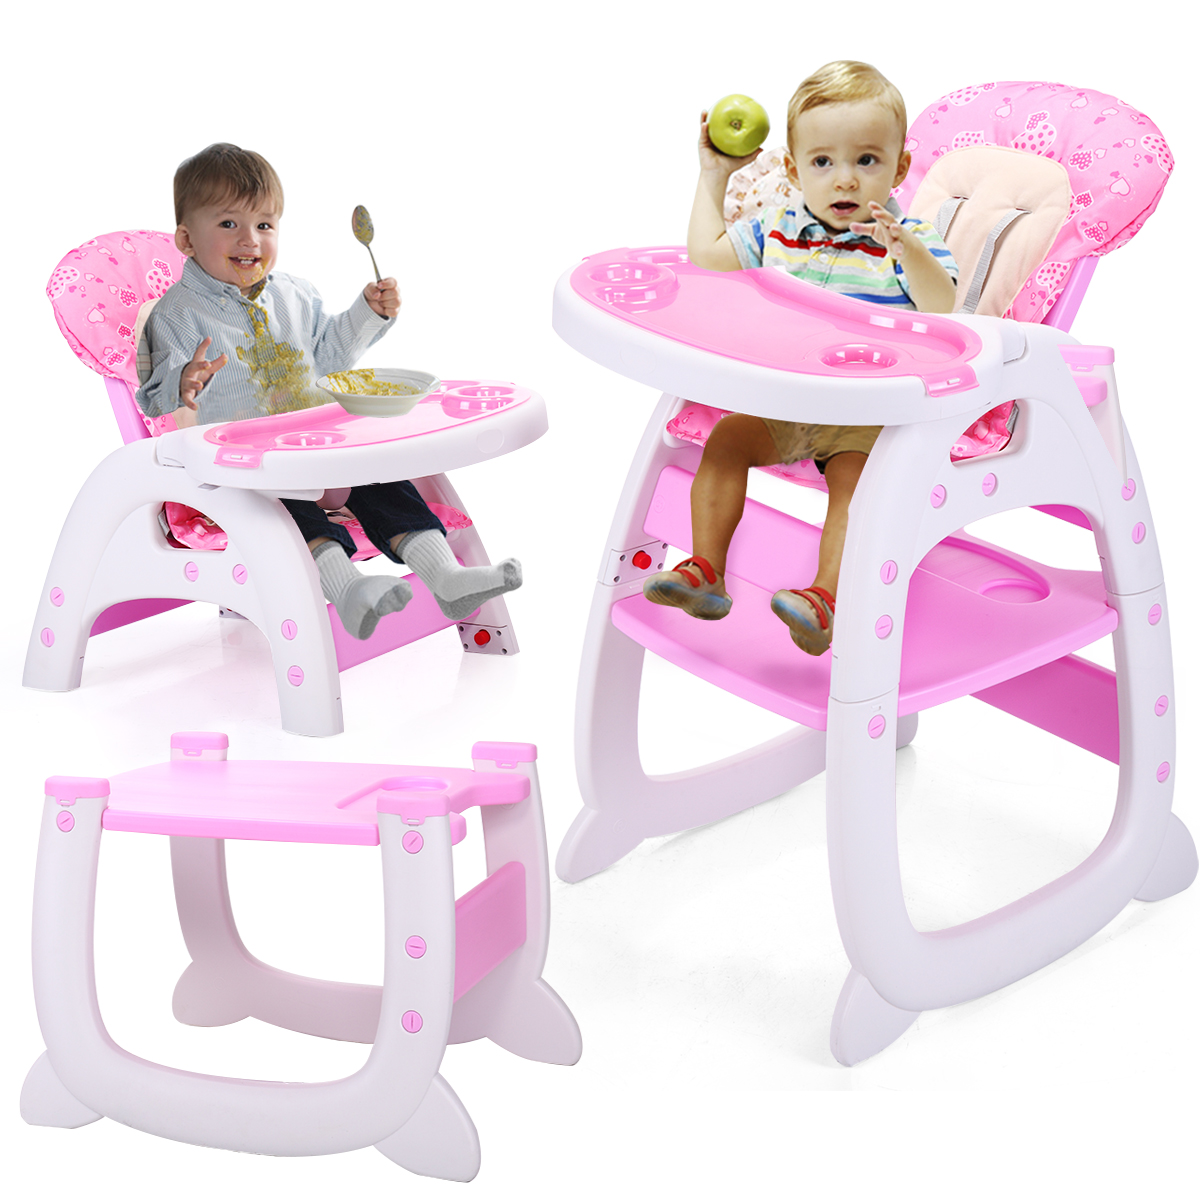 Lazymoon Pink 3 in 1 Baby High Chair Convertible Play Table Seat Booster Infant Toddler Highchairs